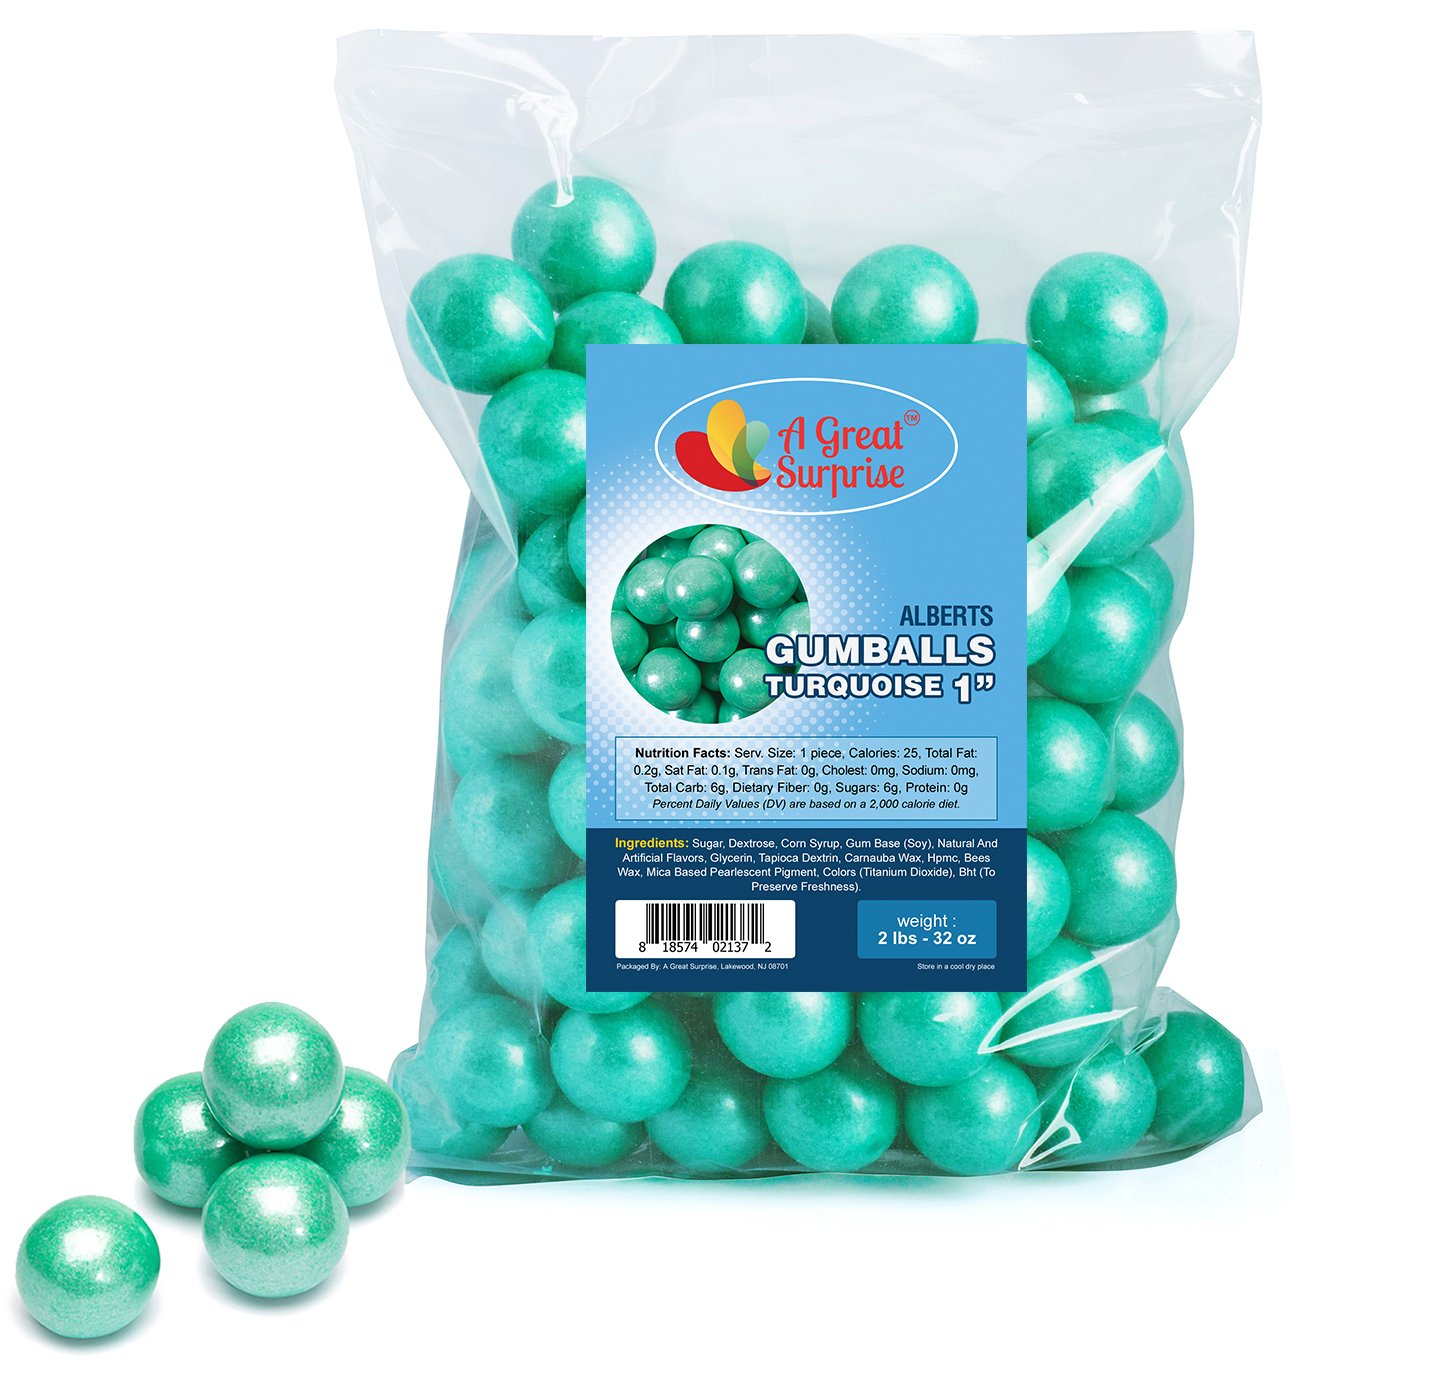 dc265e704 Amazon.com   Gumballs in Bulk - Turquoise Gumballs for Candy Buffet -  Shimmer Gumballs 1 Inch - Bulk Candy 2 LB   Grocery   Gourmet Food